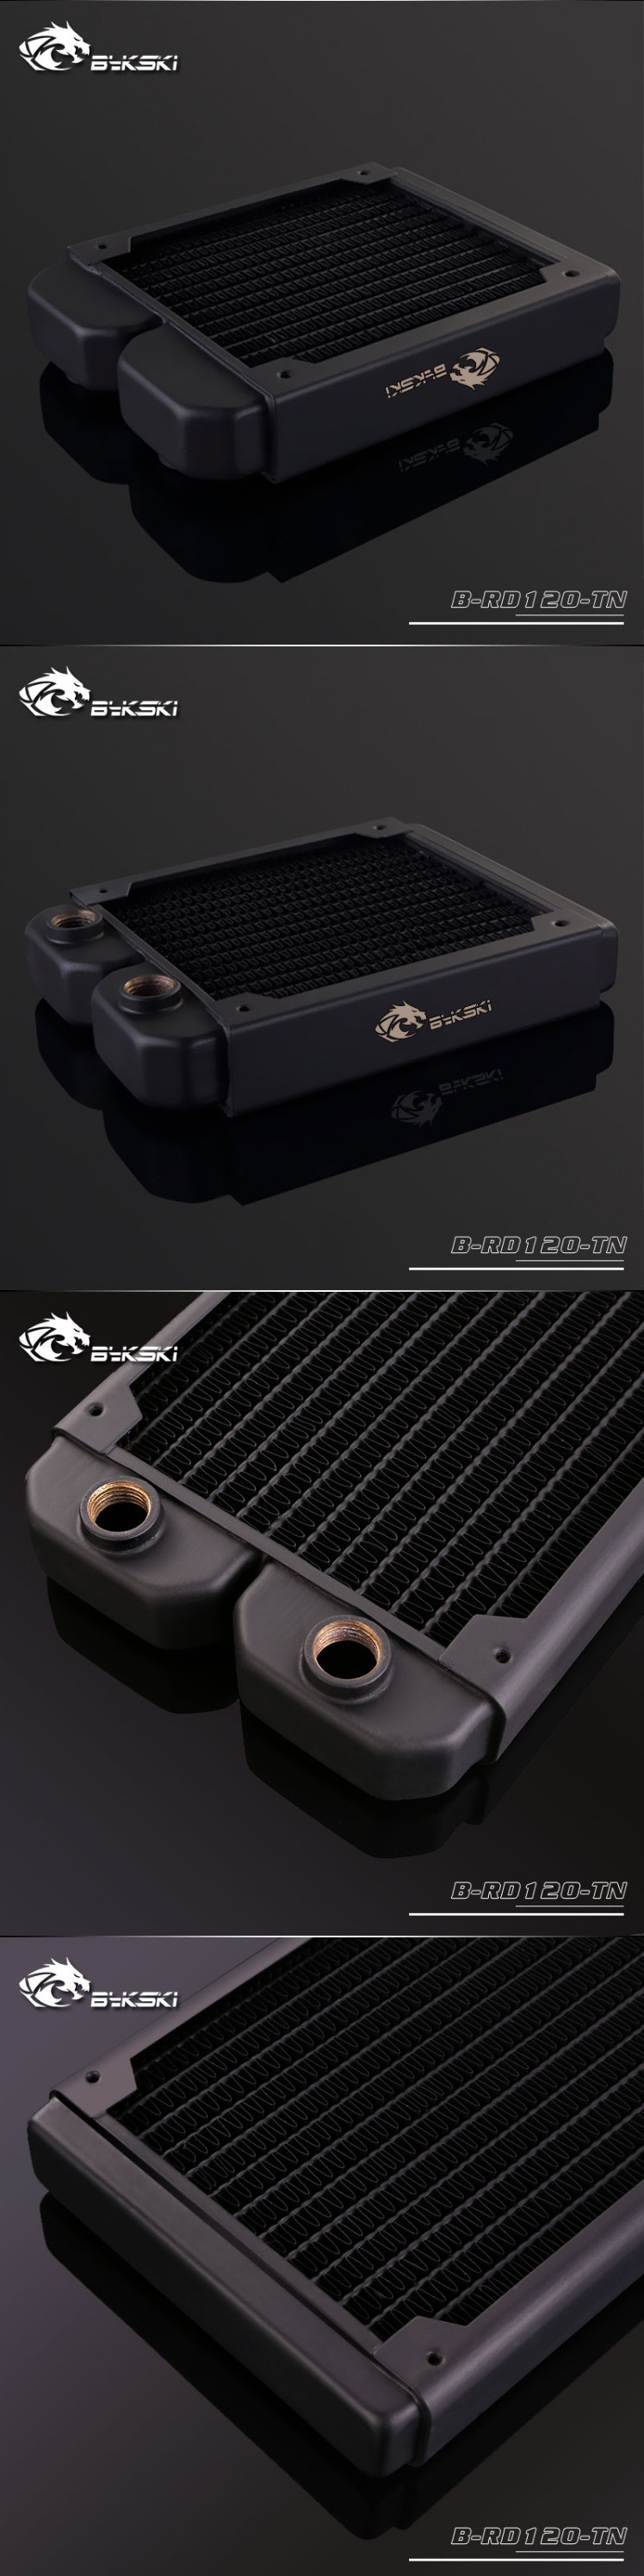 A large marketing image providing additional information about the product Bykski 120mm Radiator - Black - Additional alt info not provided